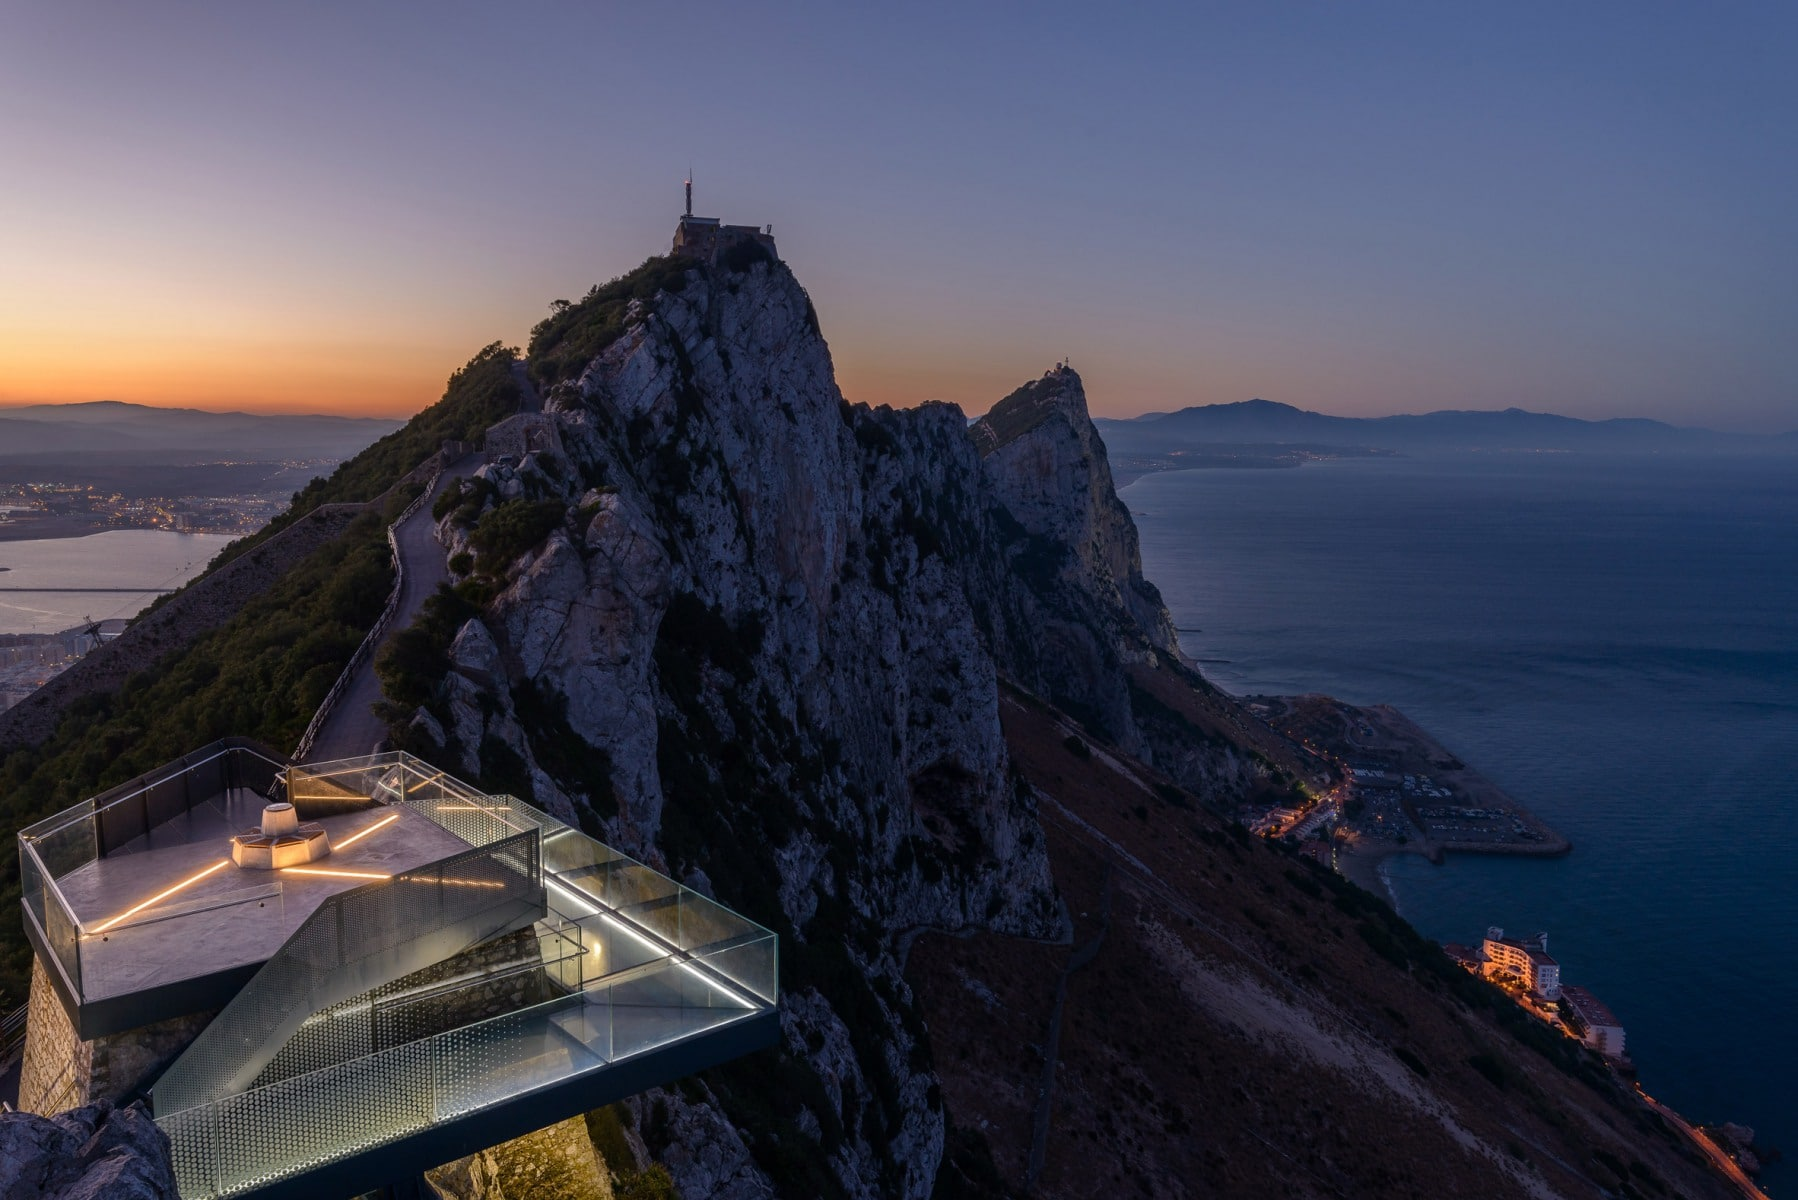 skywalk-gibraltar-15-photo-taken-for-bovis-koala-jv-by-meteogibs-photographer-stephen-ball_42273843225_o